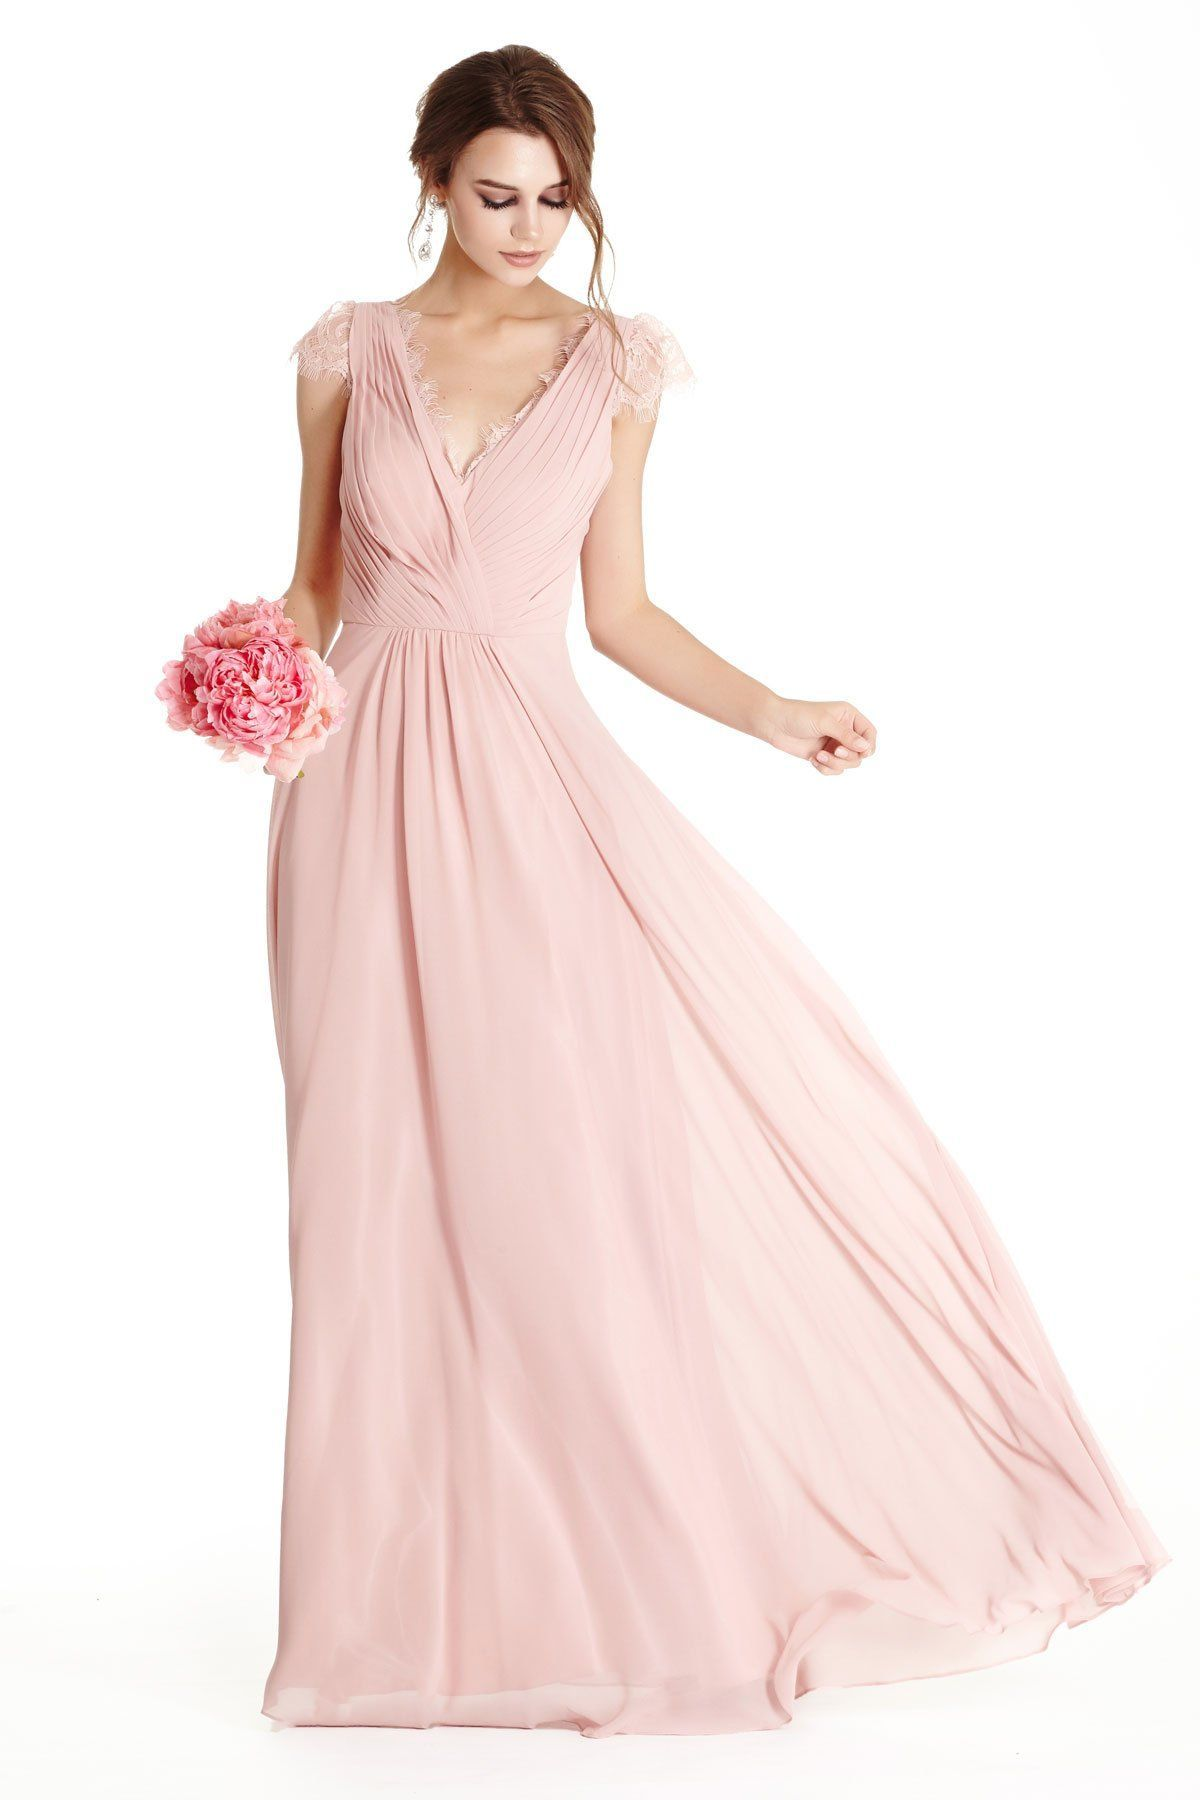 Aline full length bridesmaid evening gown has pleated